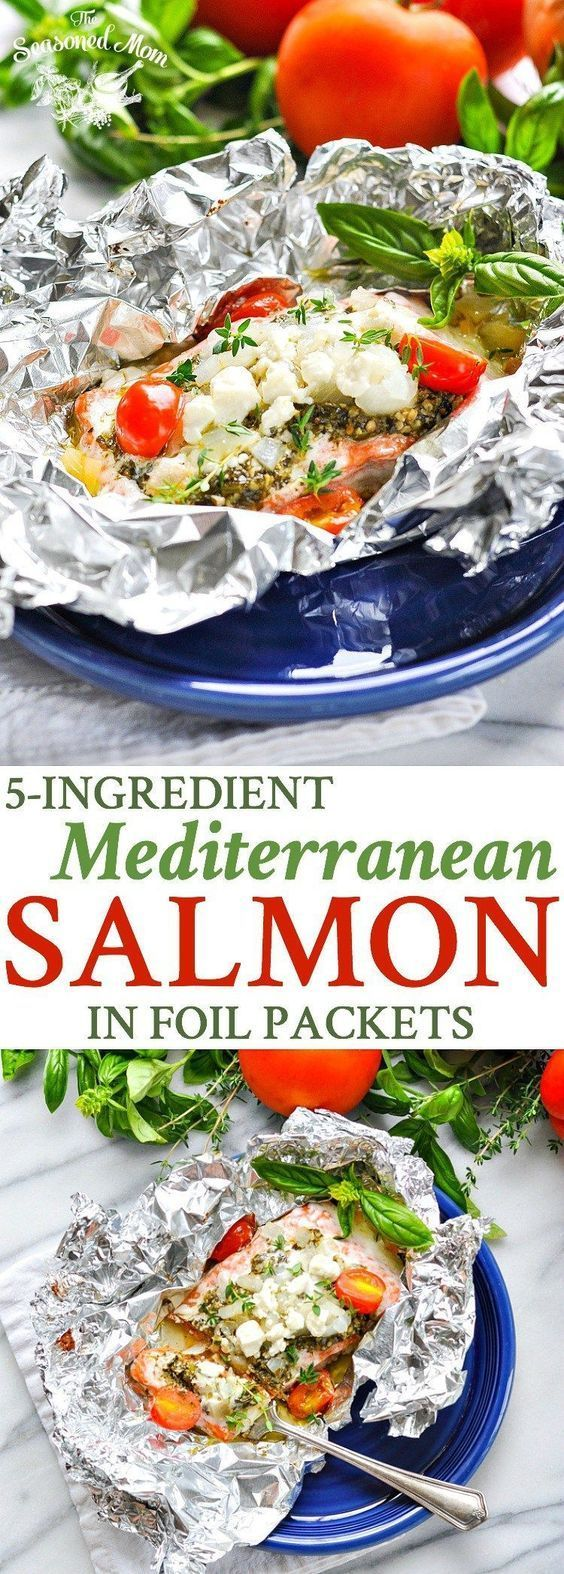 5-Ingredient Mediterranean Salmon in Foil Packets | Seafood Recipes | Easy Dinner Recipes | Dinner Ideas | Healthy 5 Ingredient or Less Recipes | Healthy Recipes | Salmon Recipes Baked | Camping Food | Camping Meals | Gluten Free #campingfood